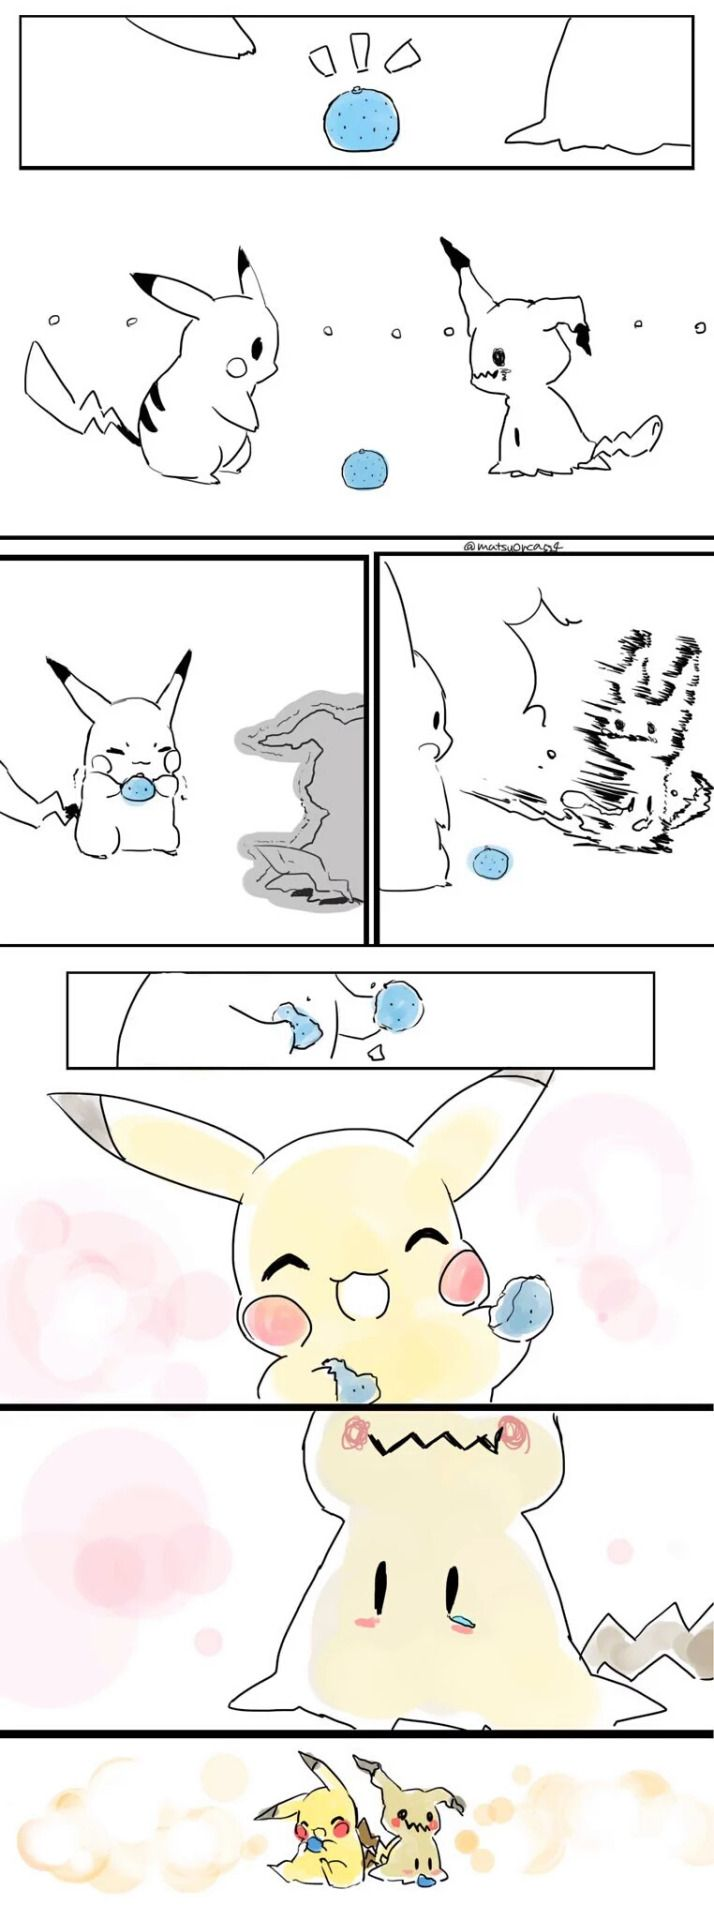 """Please say I'm not the only one that thinks Mimikyu's name is a play on the words """"mimic you""""^_^"""